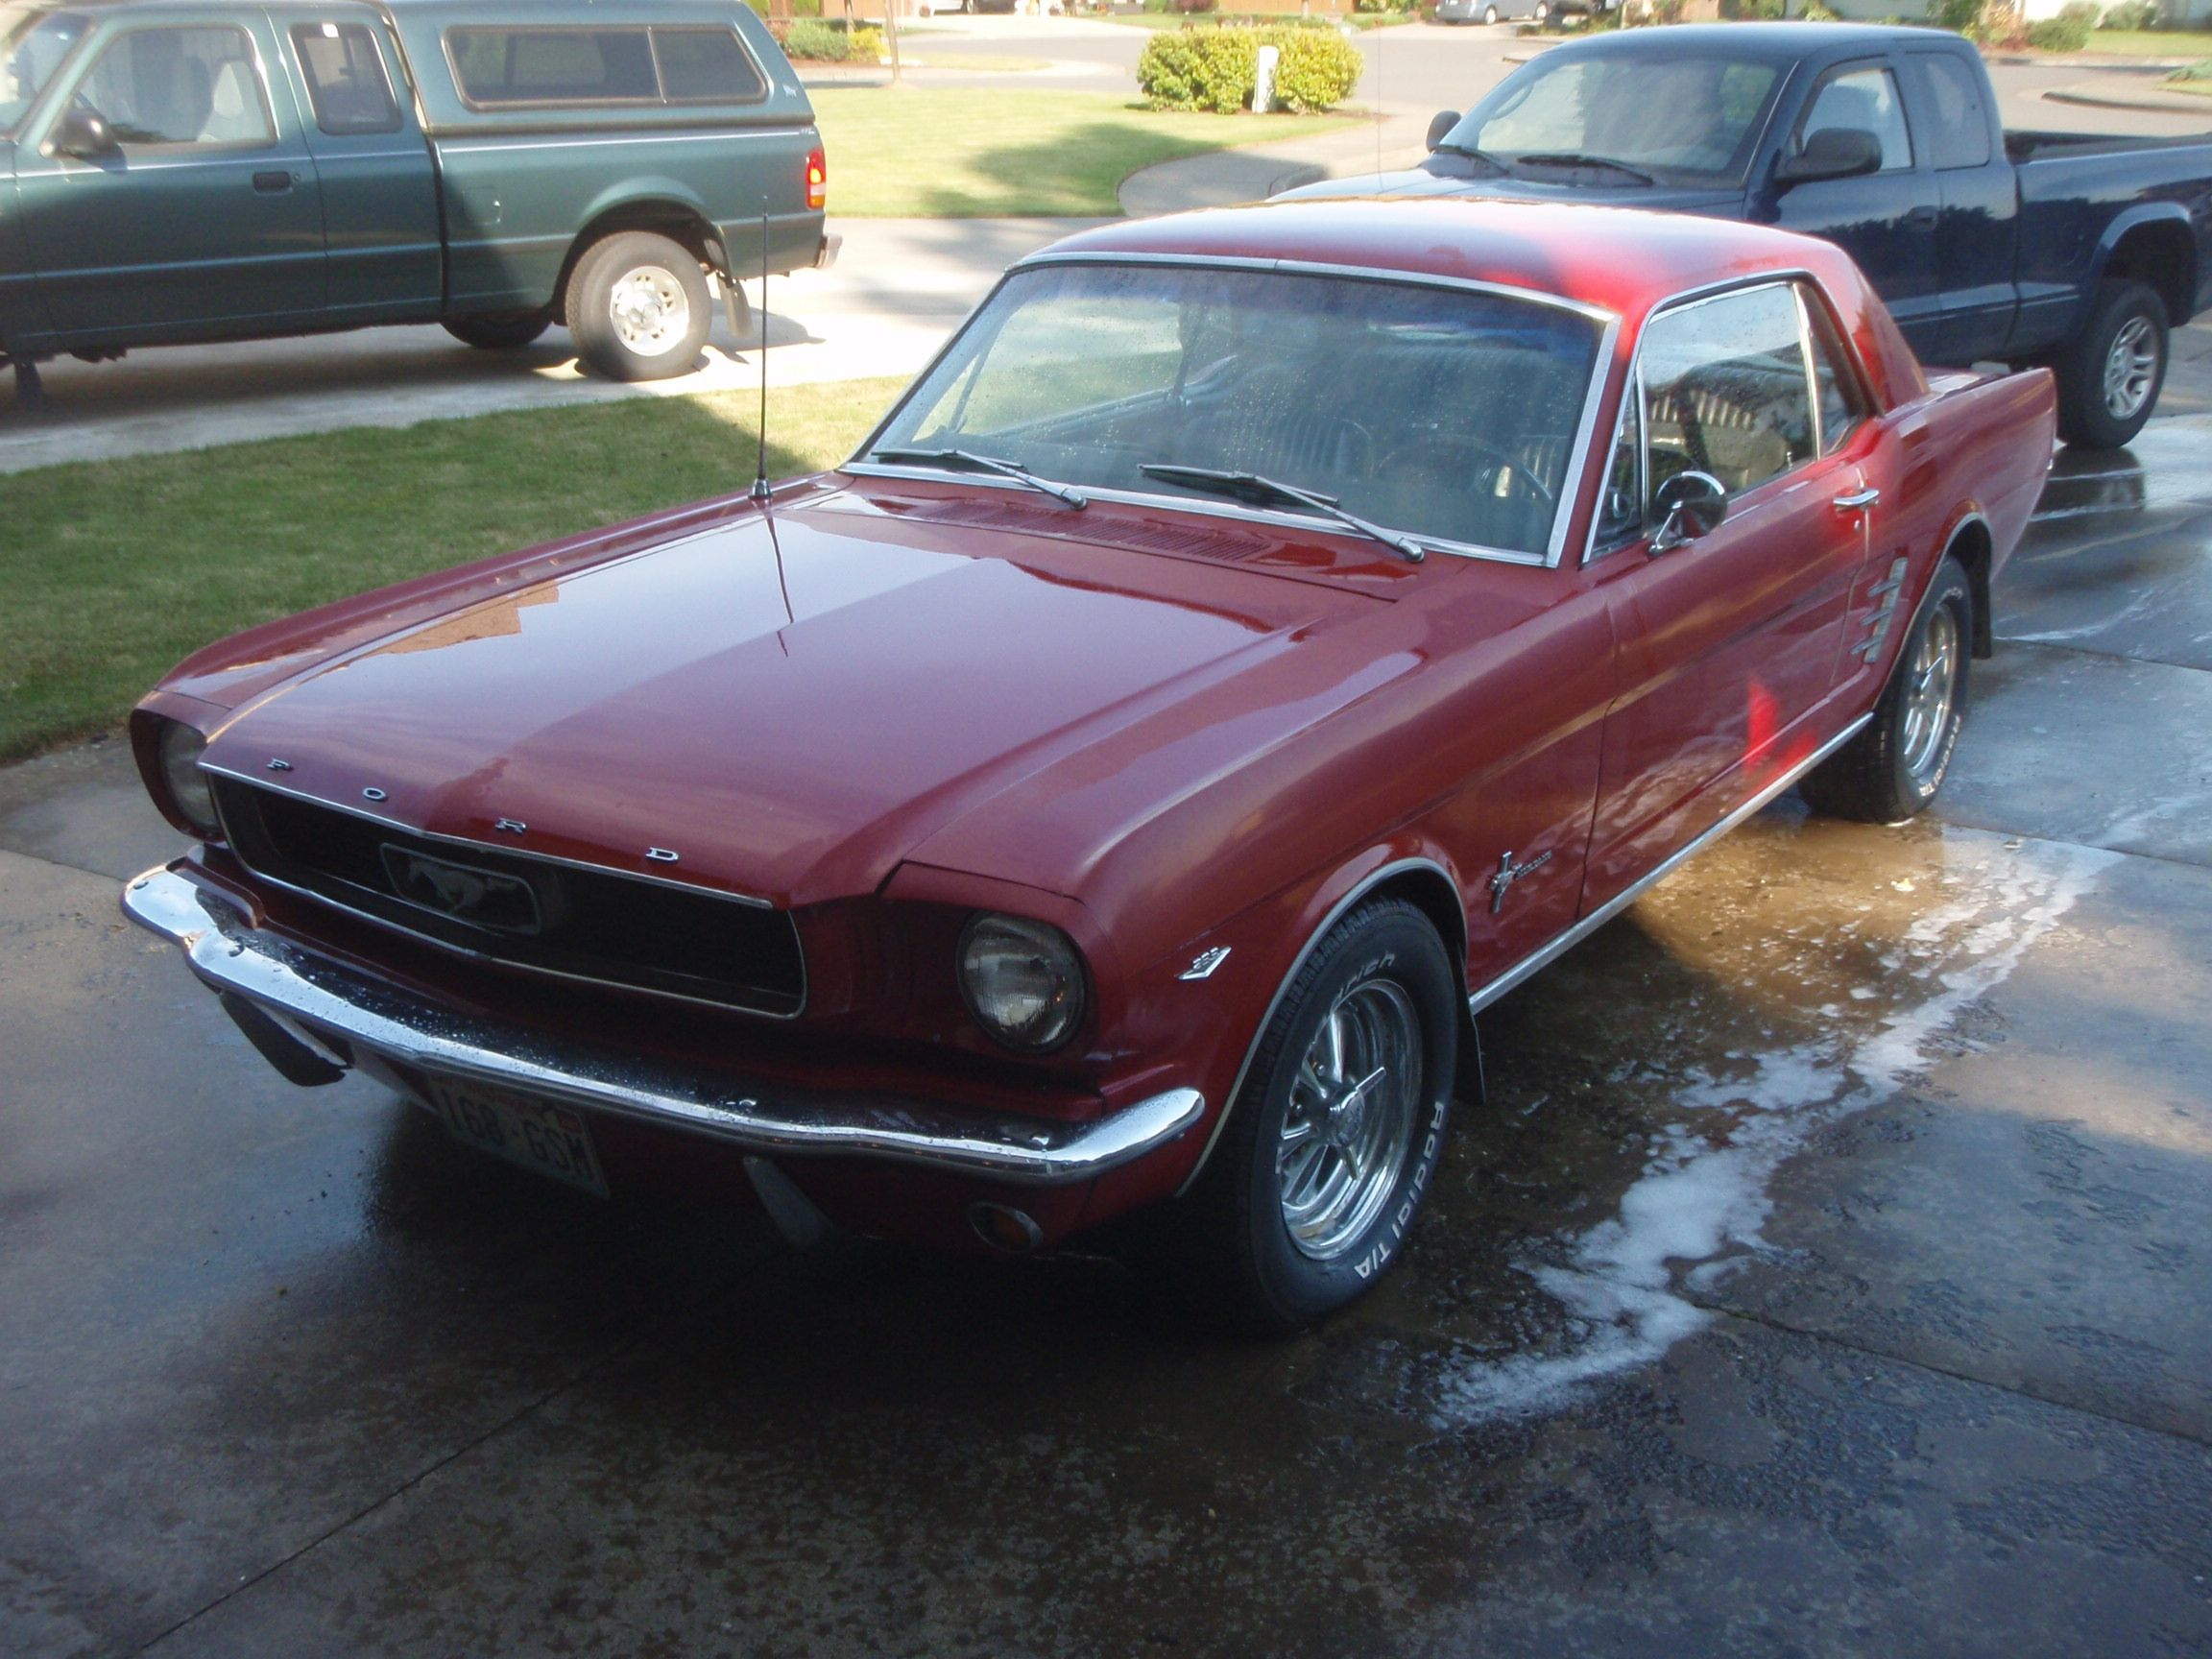 Ford Mustang For Sale at Classic Car Car Trader - Used Autos For ...